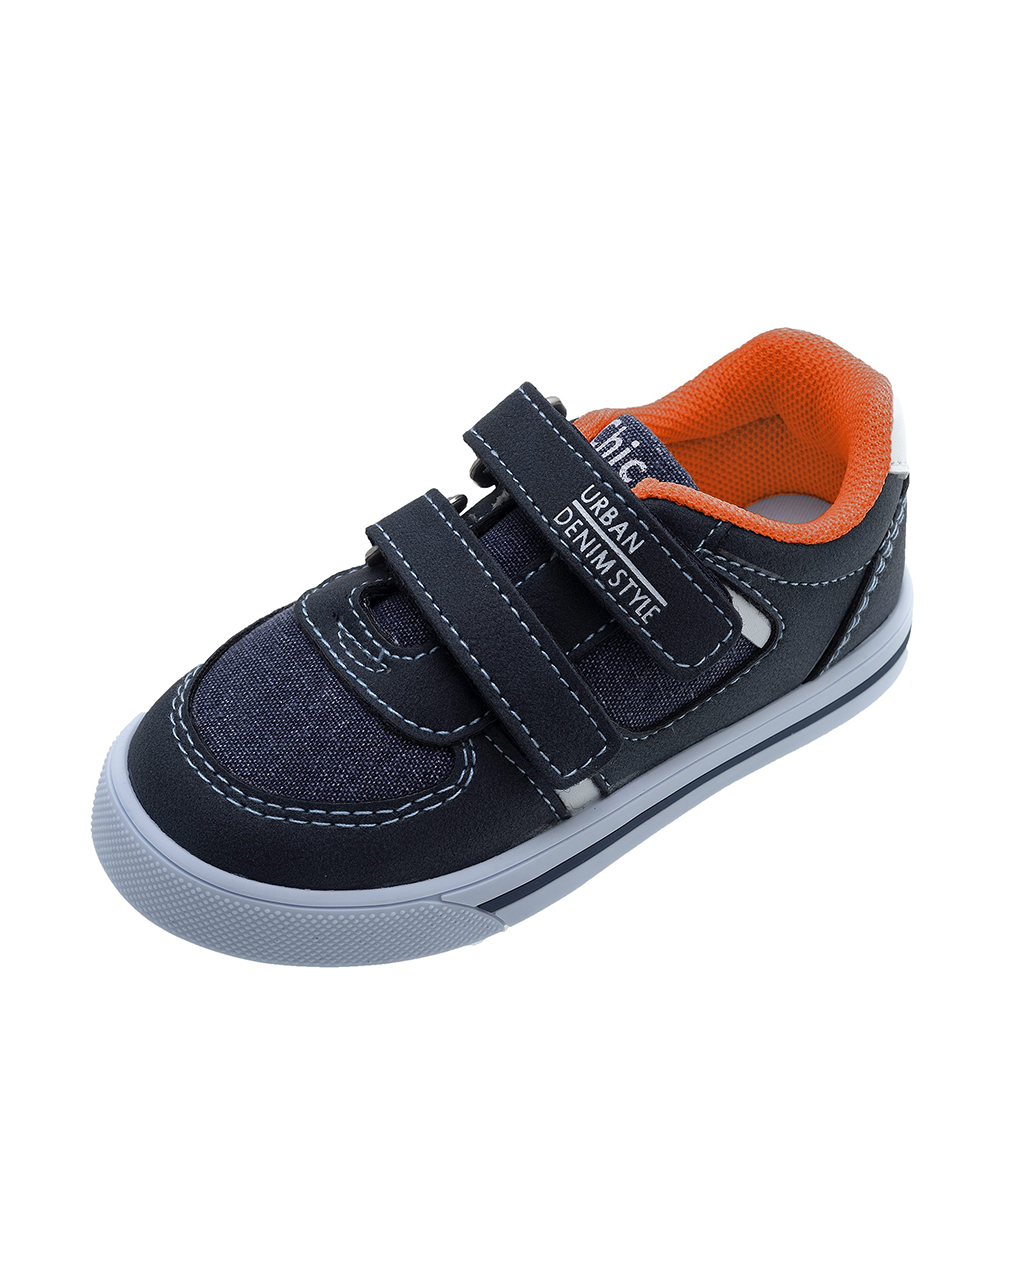 Sneakers maschio frederic - Chicco